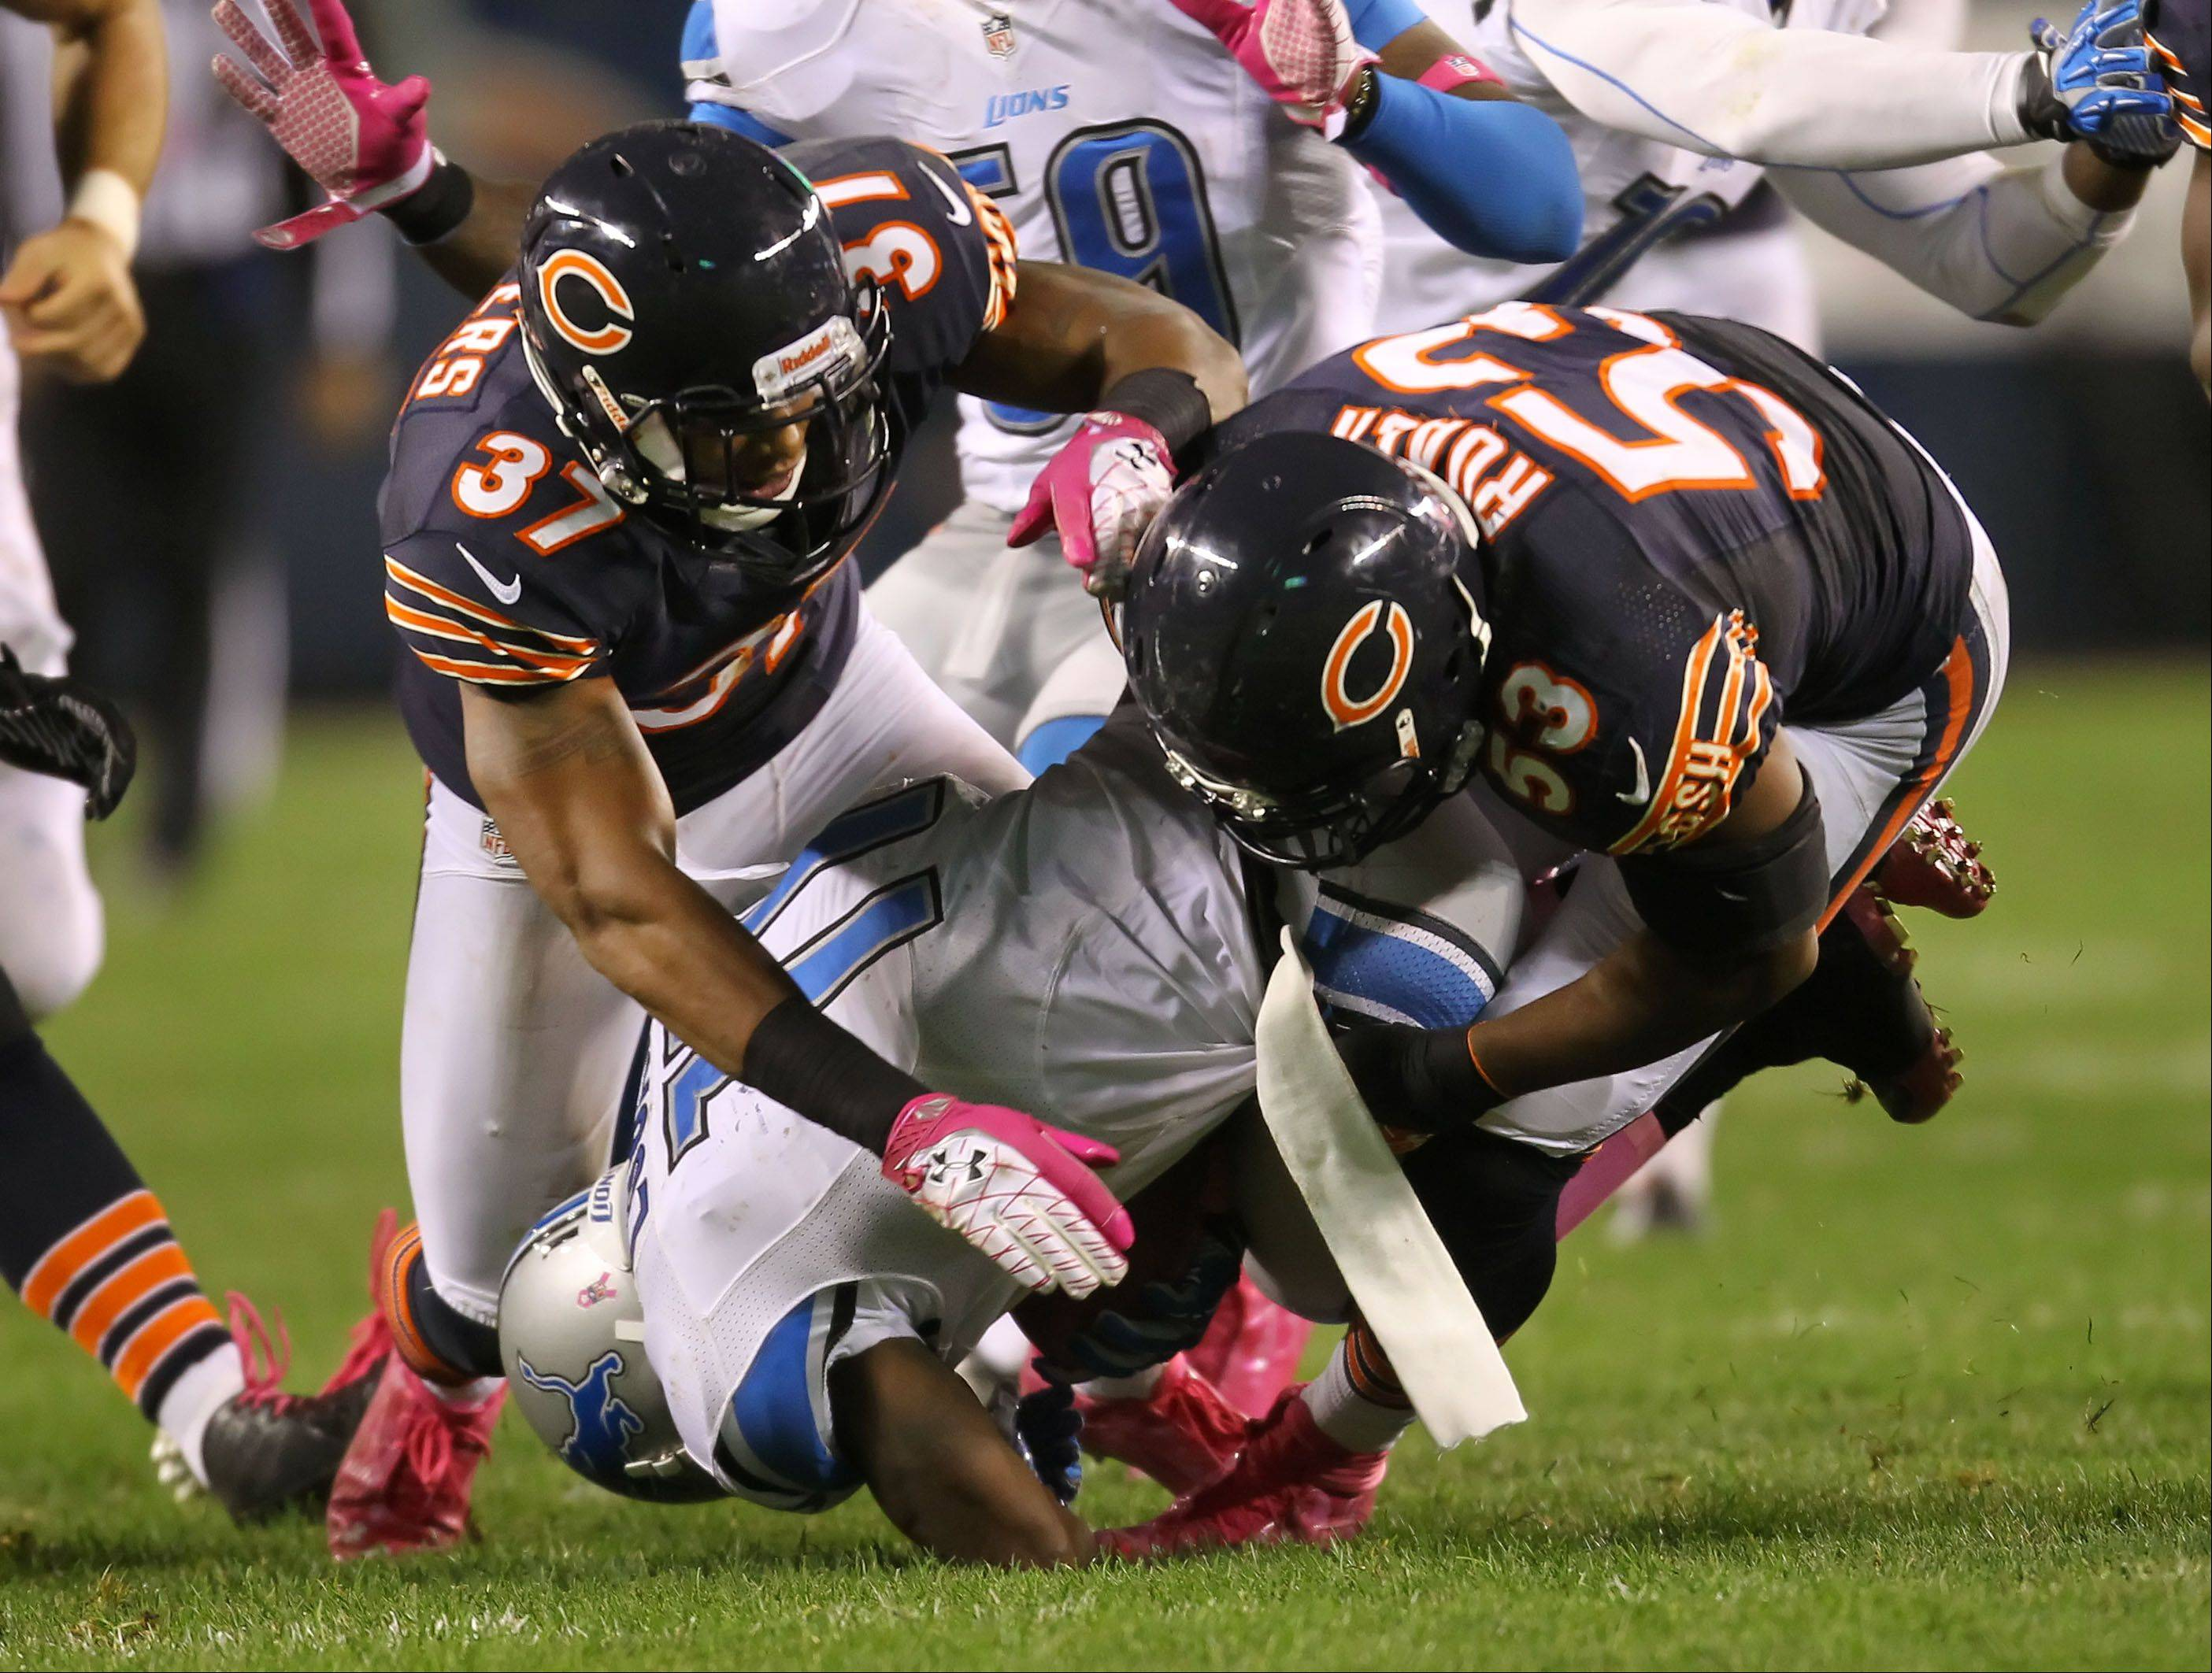 Bears free safety Anthony Walters and Bears outside linebacker Nick Roach tackle Detroit Lions wide receiver Stefan Logan during their game Monday night at Soldier Field.